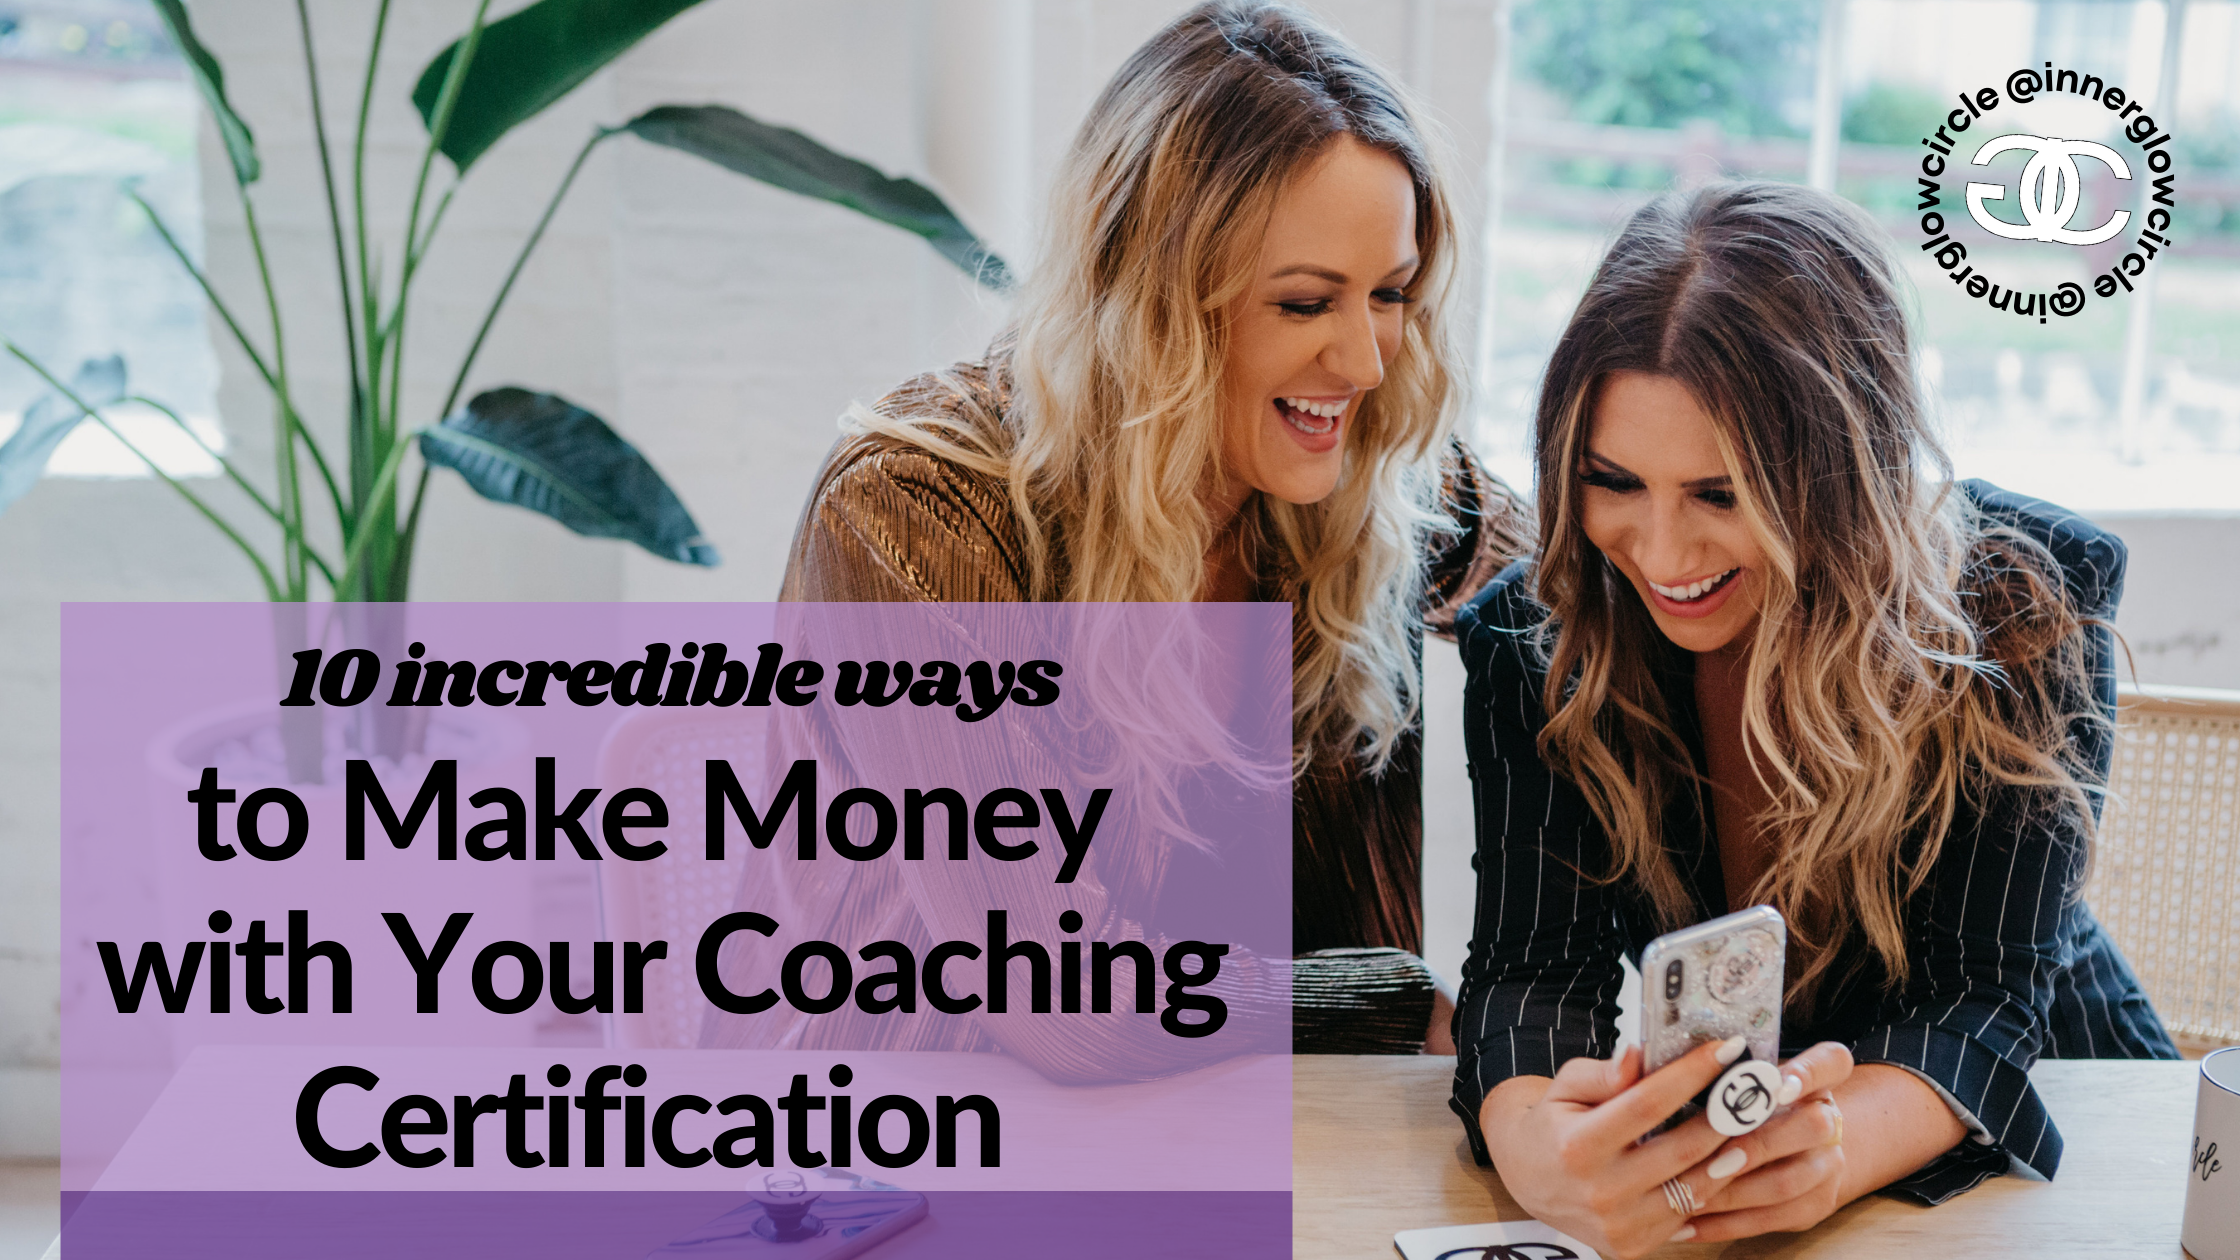 make money with life coaching certification